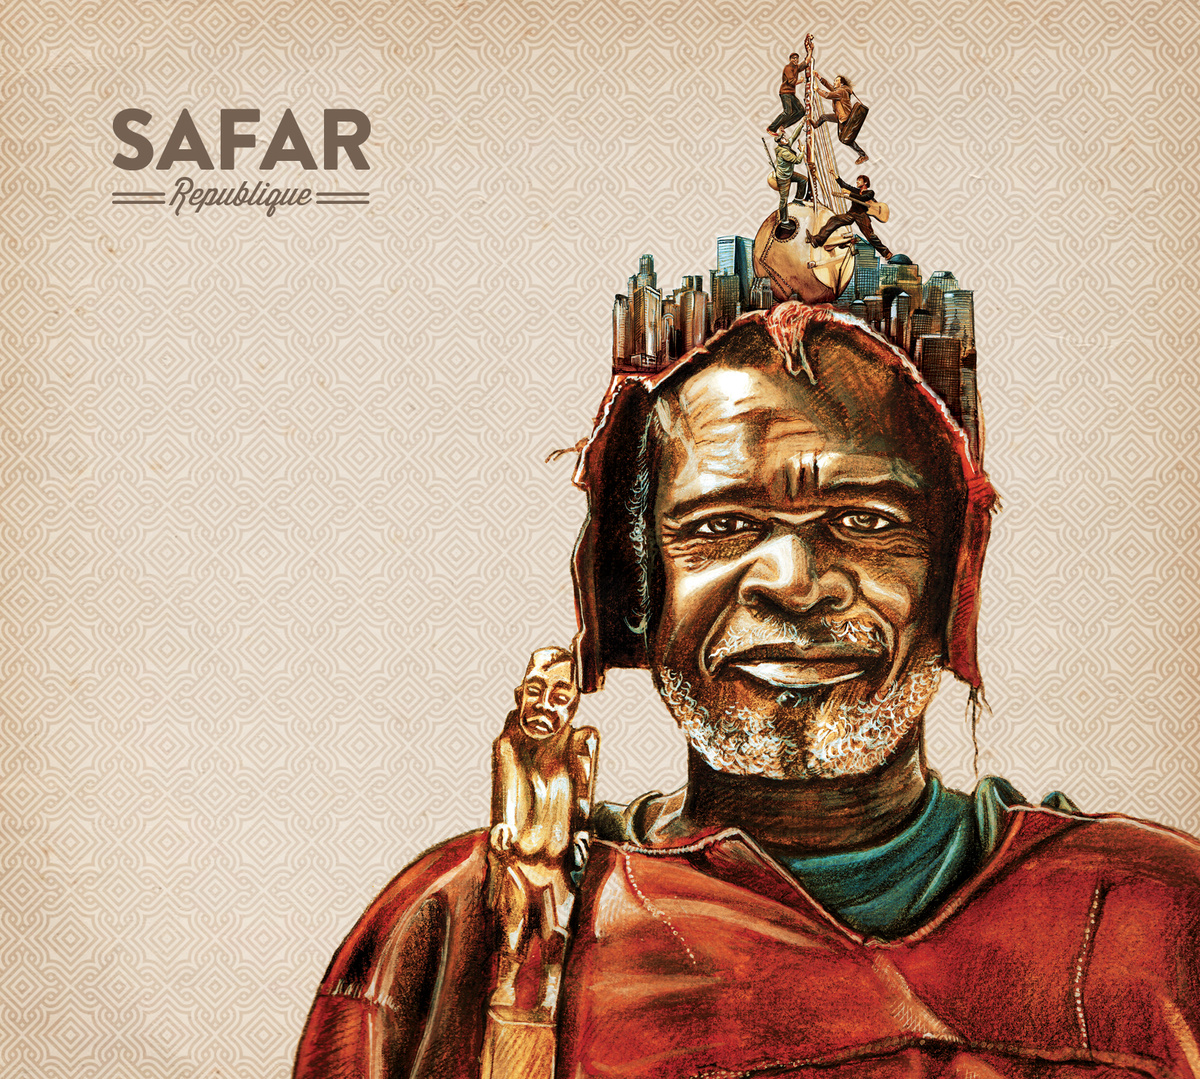 2013 special guest in Safar republique